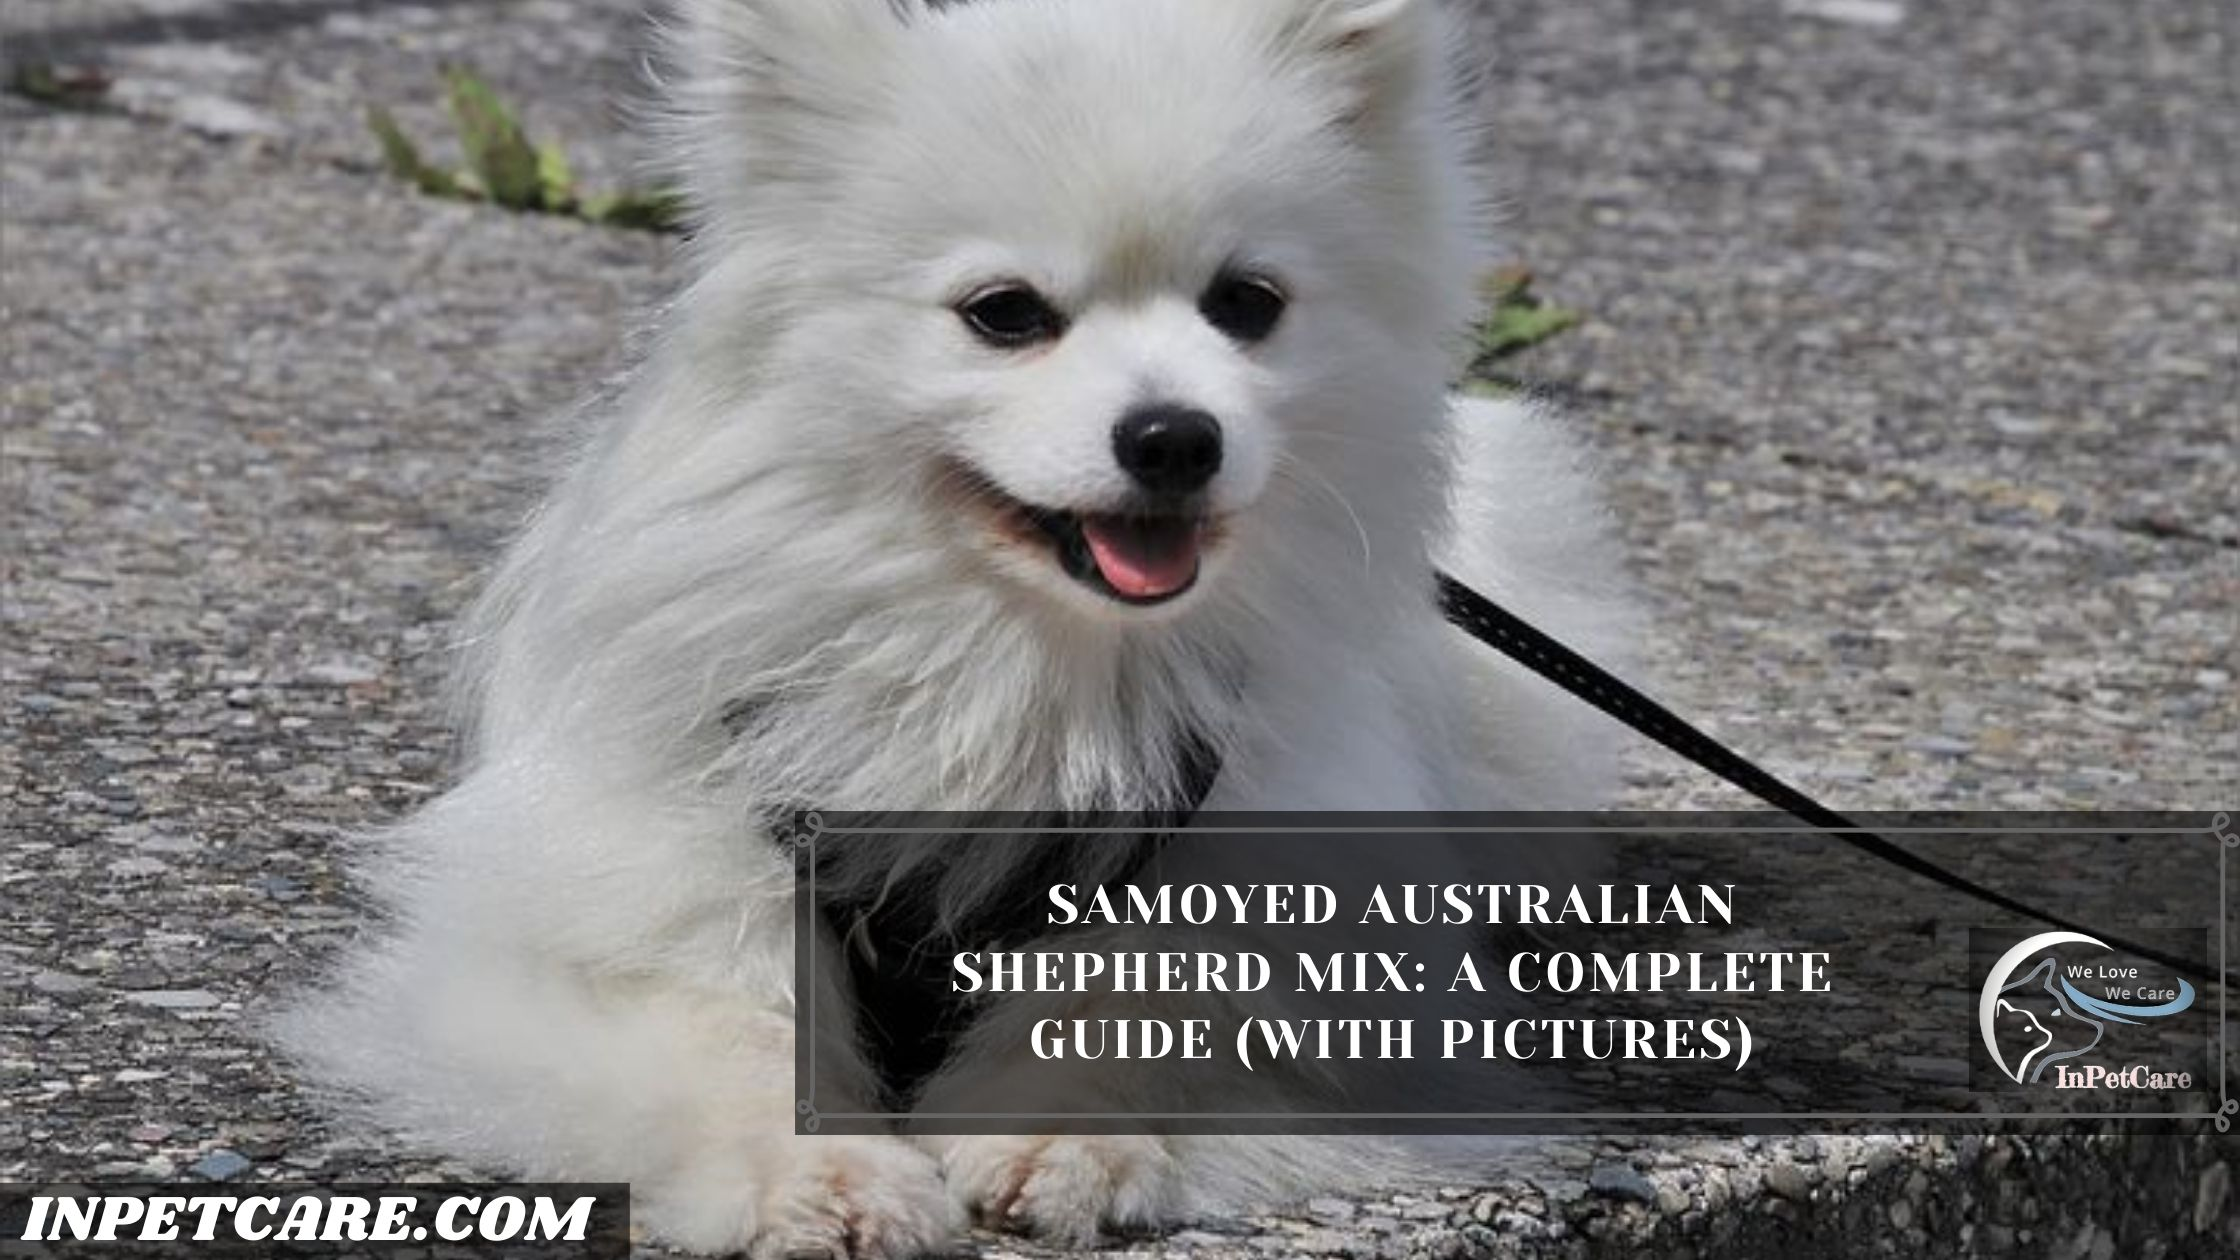 Samoyed Australian Shepherd Mix: A Complete Guide (With Pictures)